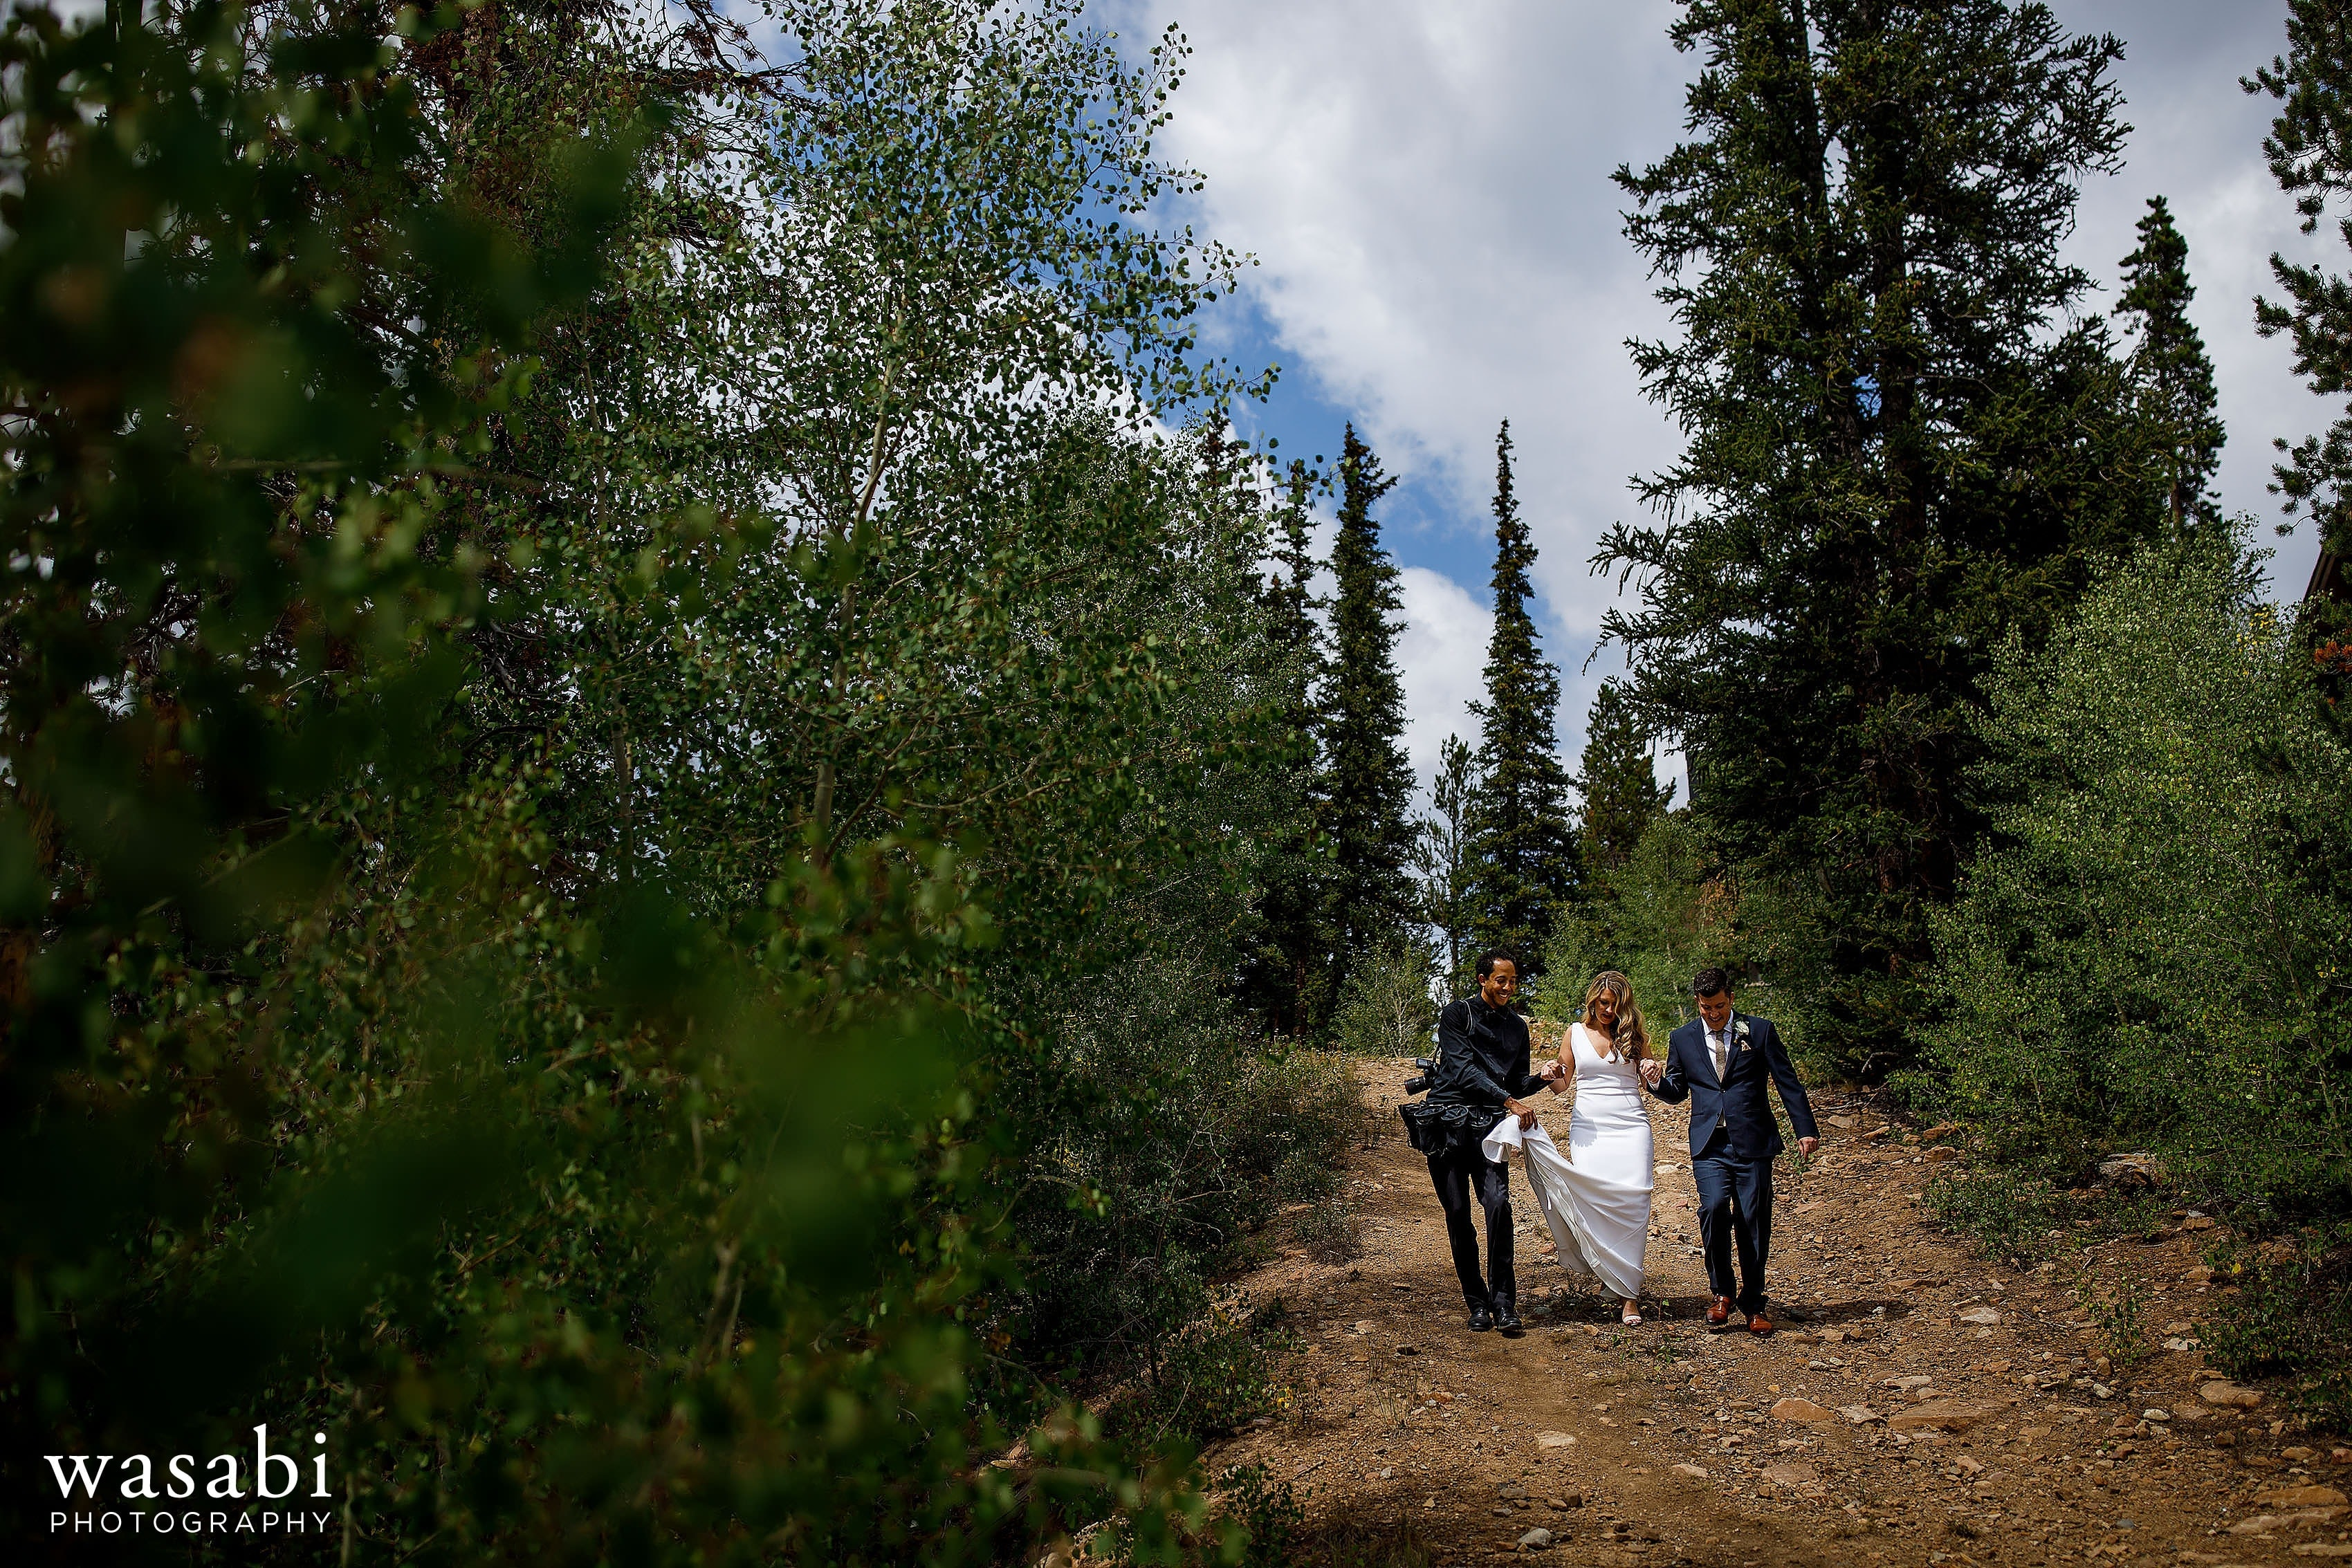 A Behind the Scenes look back at Wasabi Photography's 2018 wedding with photos of our team going above and beyond to make the best images for our couples!